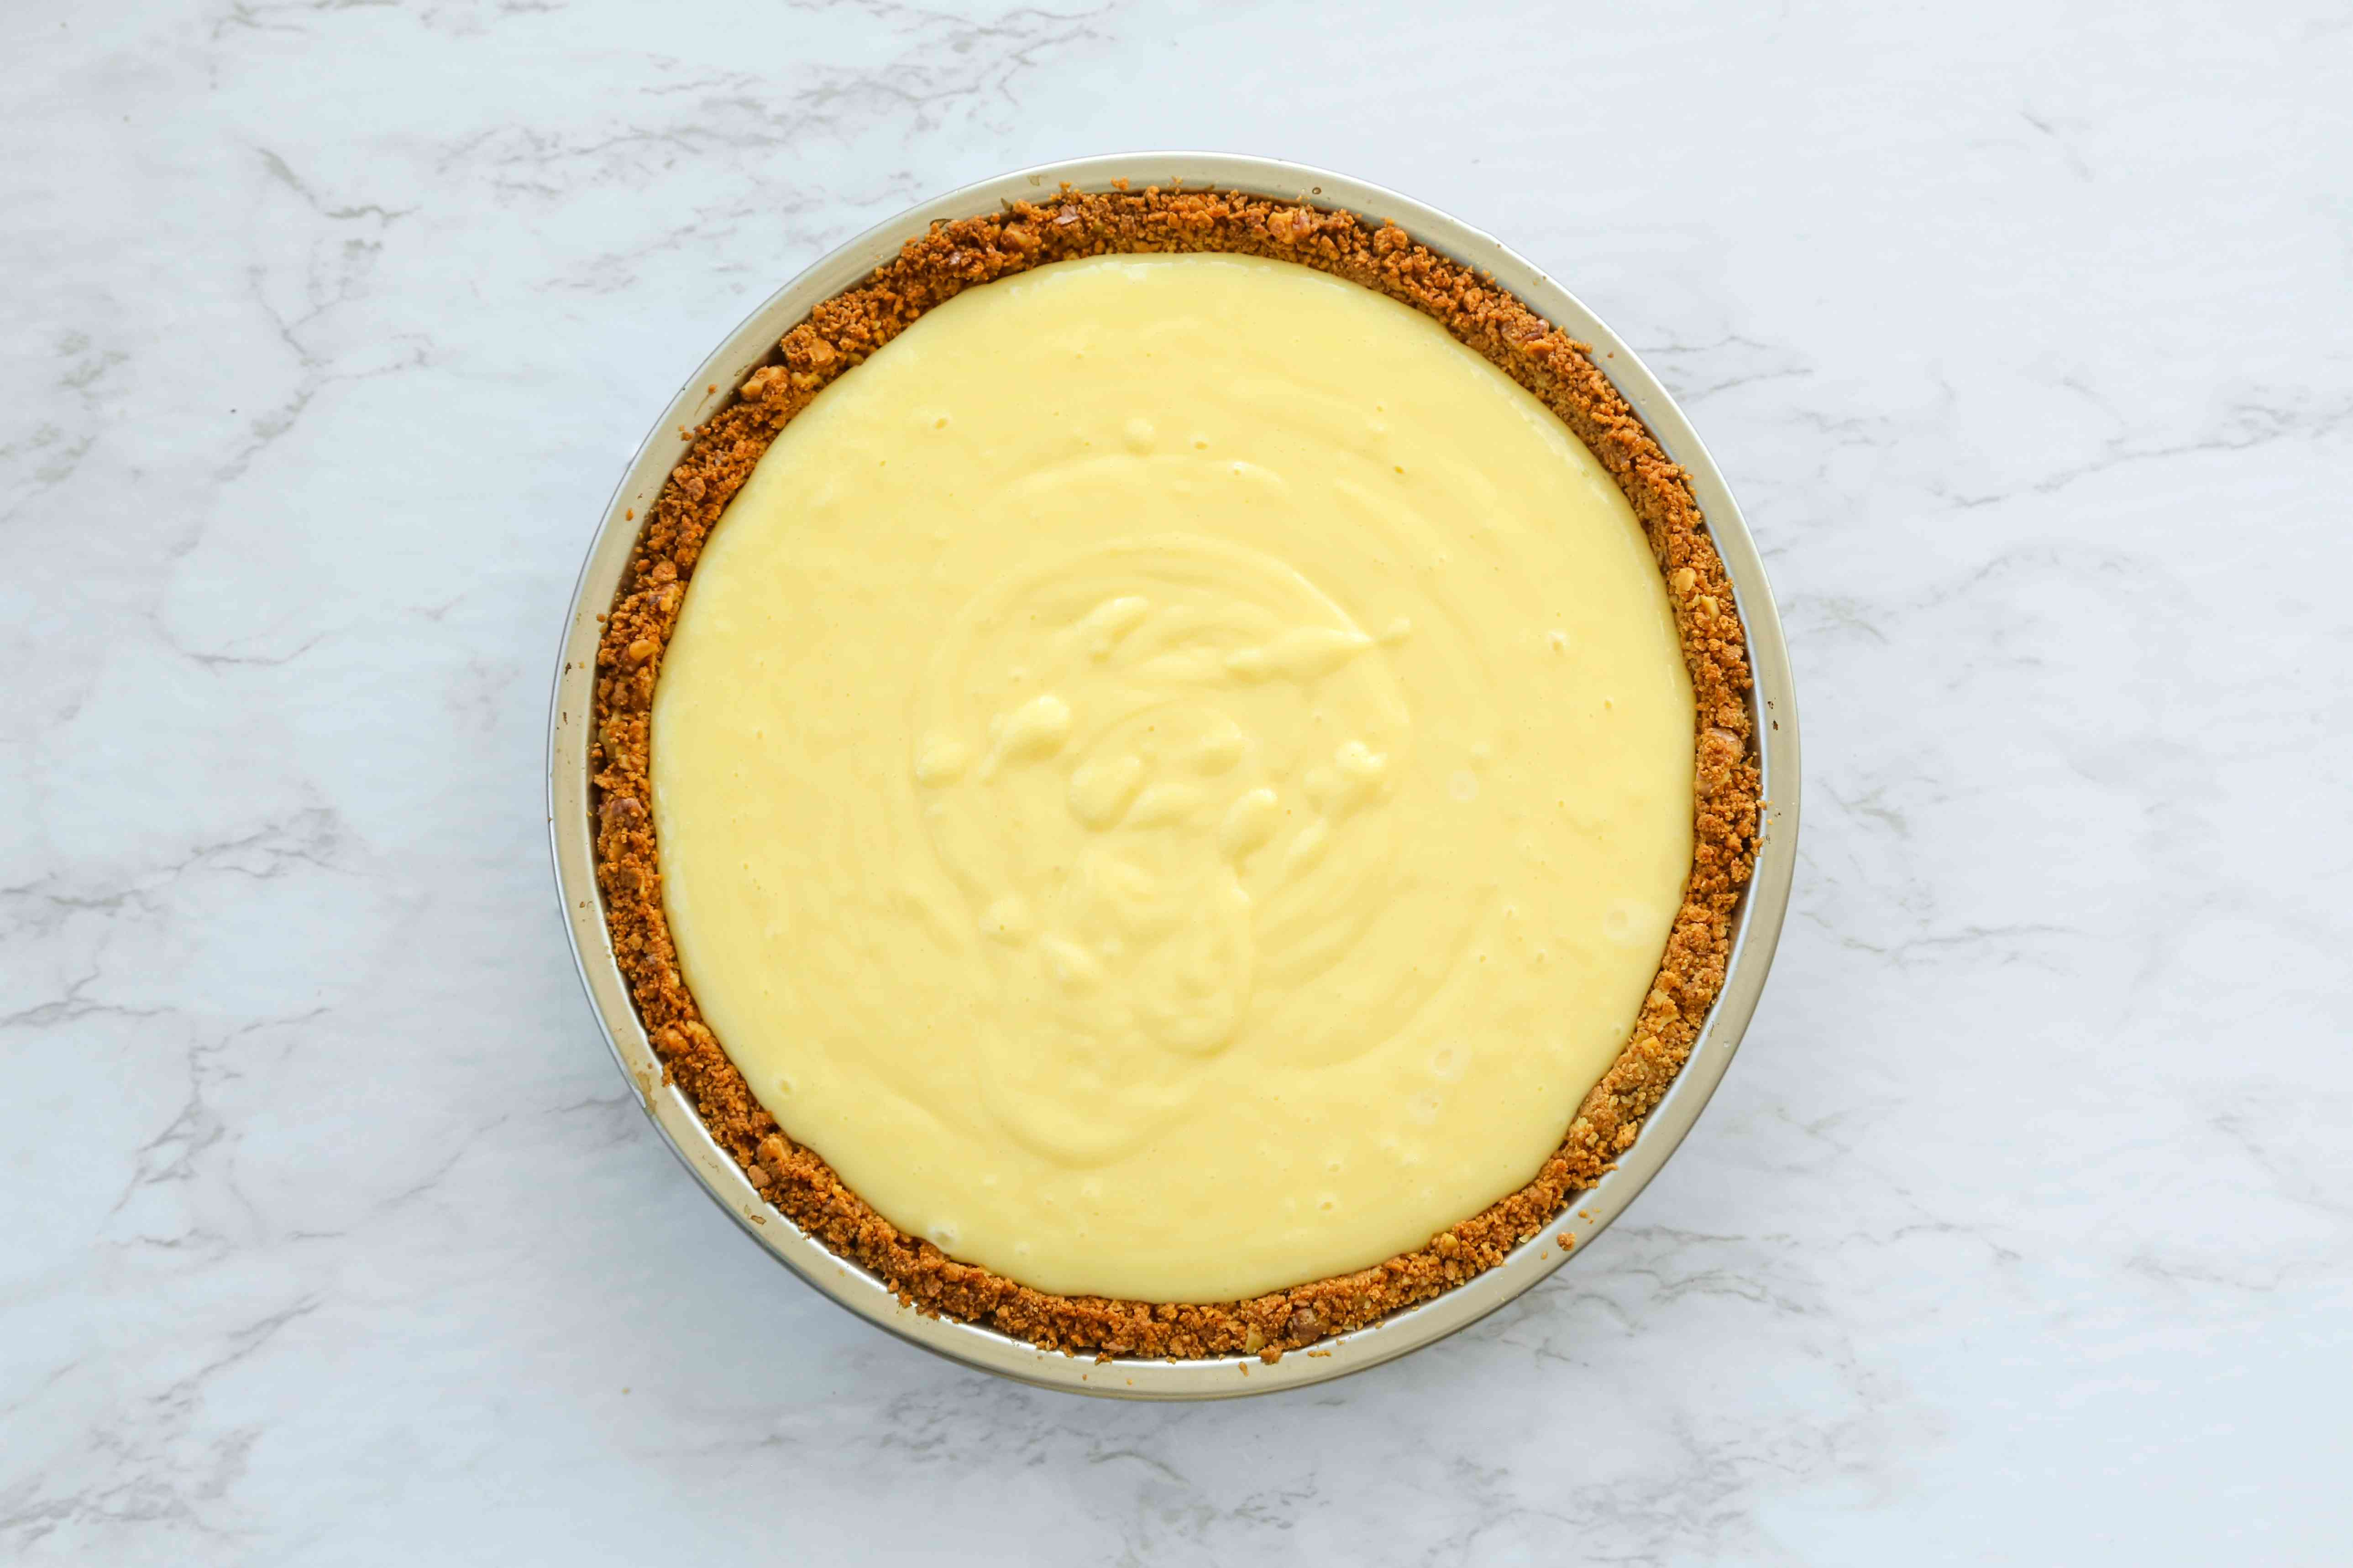 combine the egg yolks with the condensed milk and lemon juice and pour into the pie crust